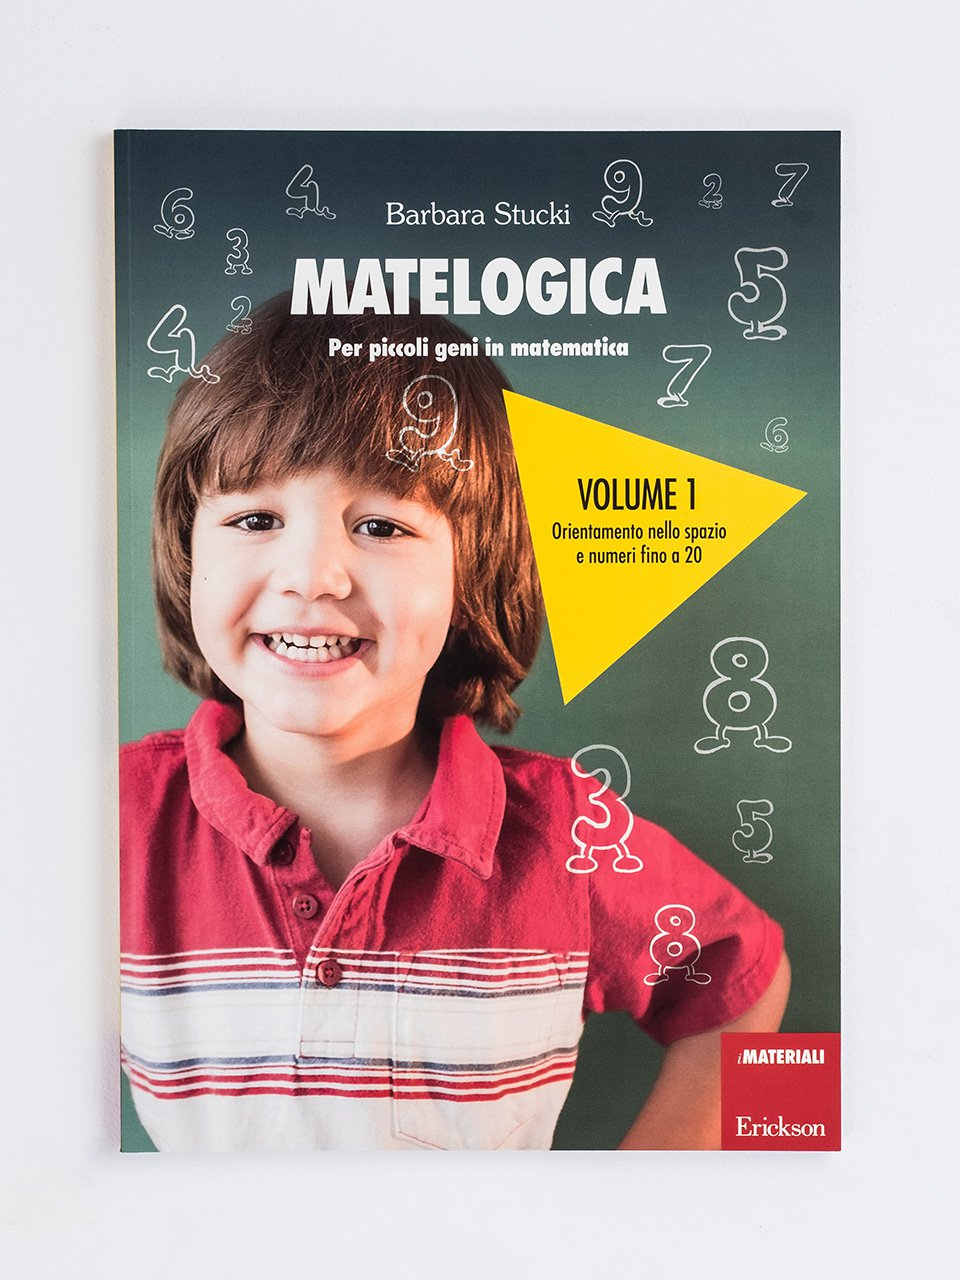 MATELOGICA - Volume 1 - Le coppie minime - Volume 2 - Libri - App e software - Erickson